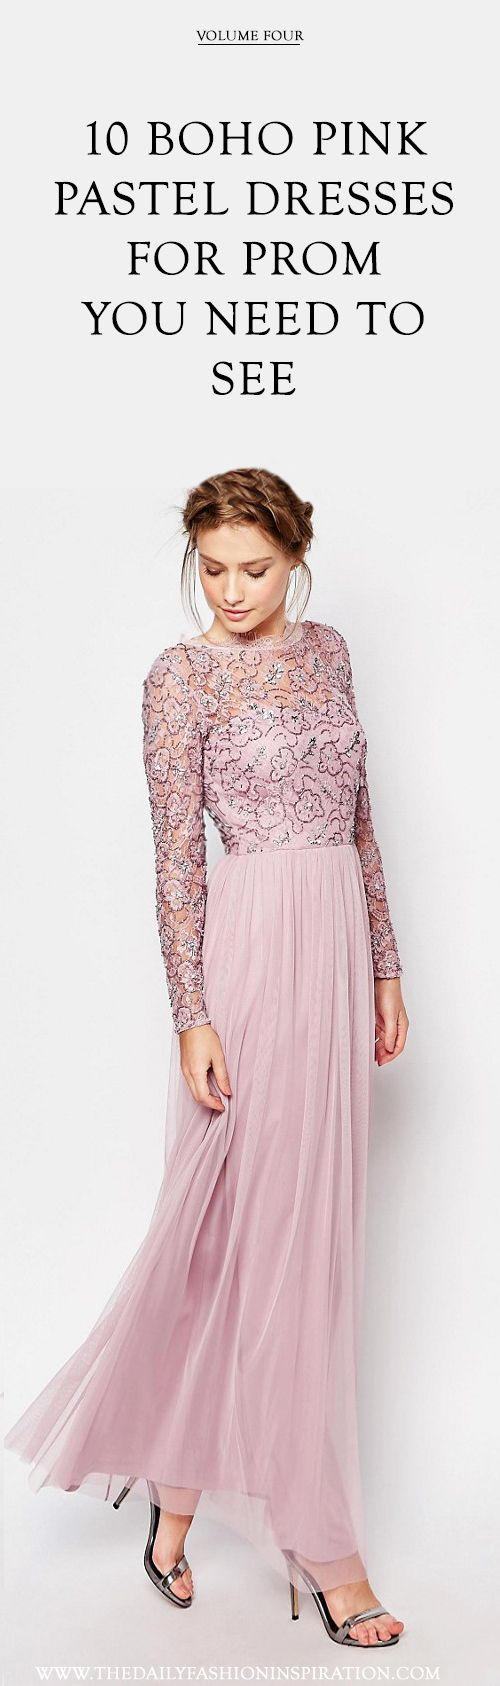 the best selection of pastel #pink #prom #dress